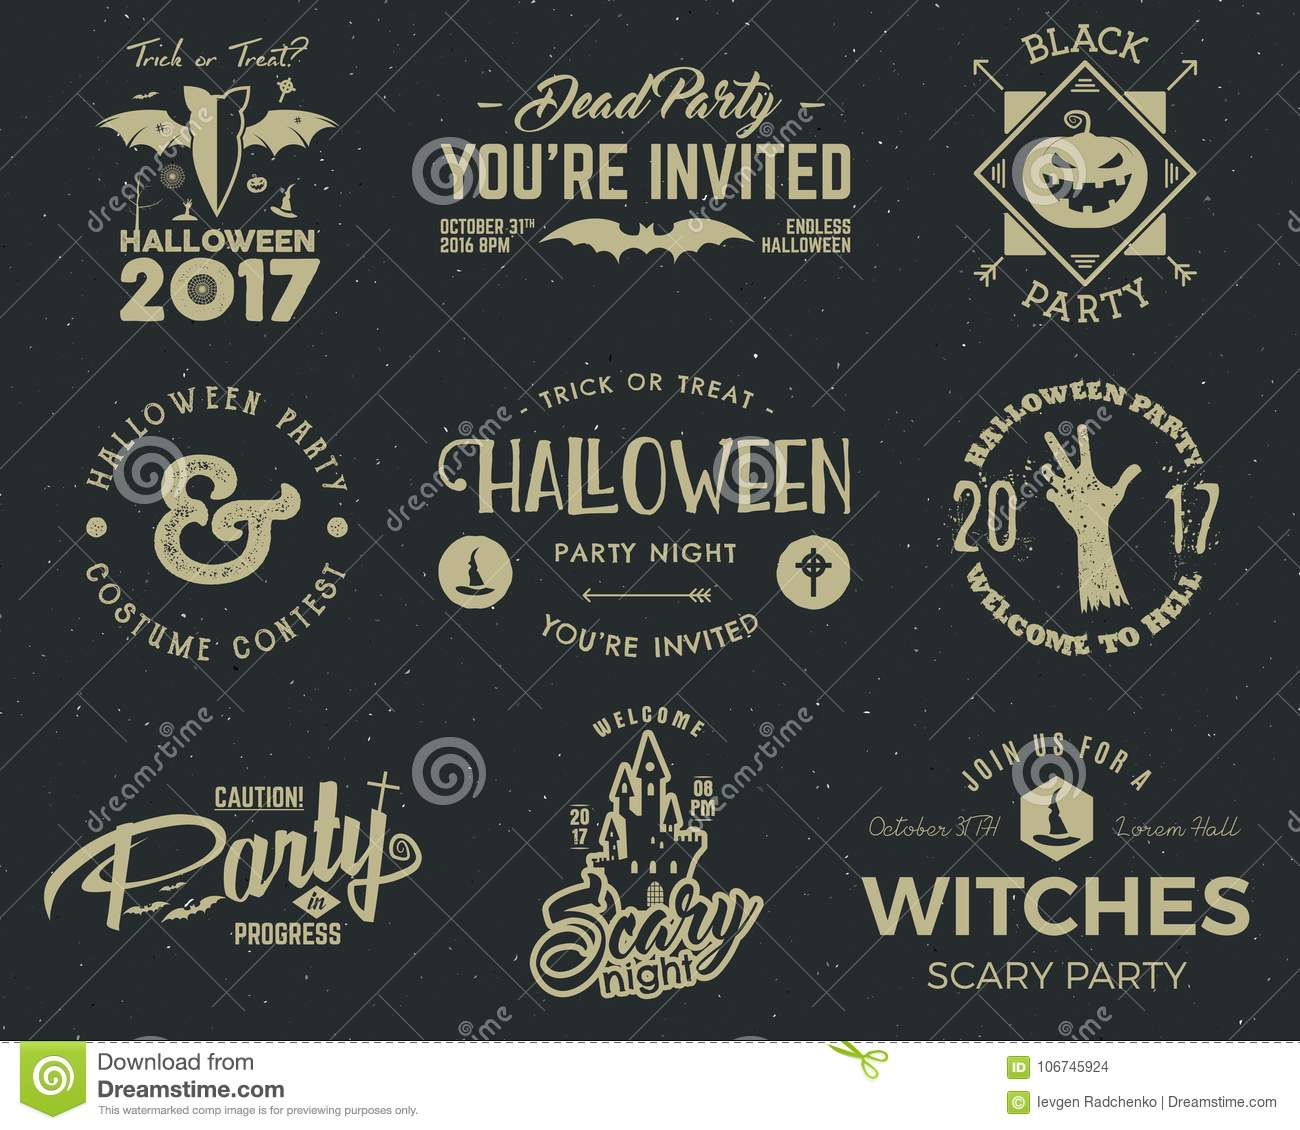 Enchanting scary powerpoint templates collection examples funky halloween powerpoint templates gift examples professional toneelgroepblik Gallery